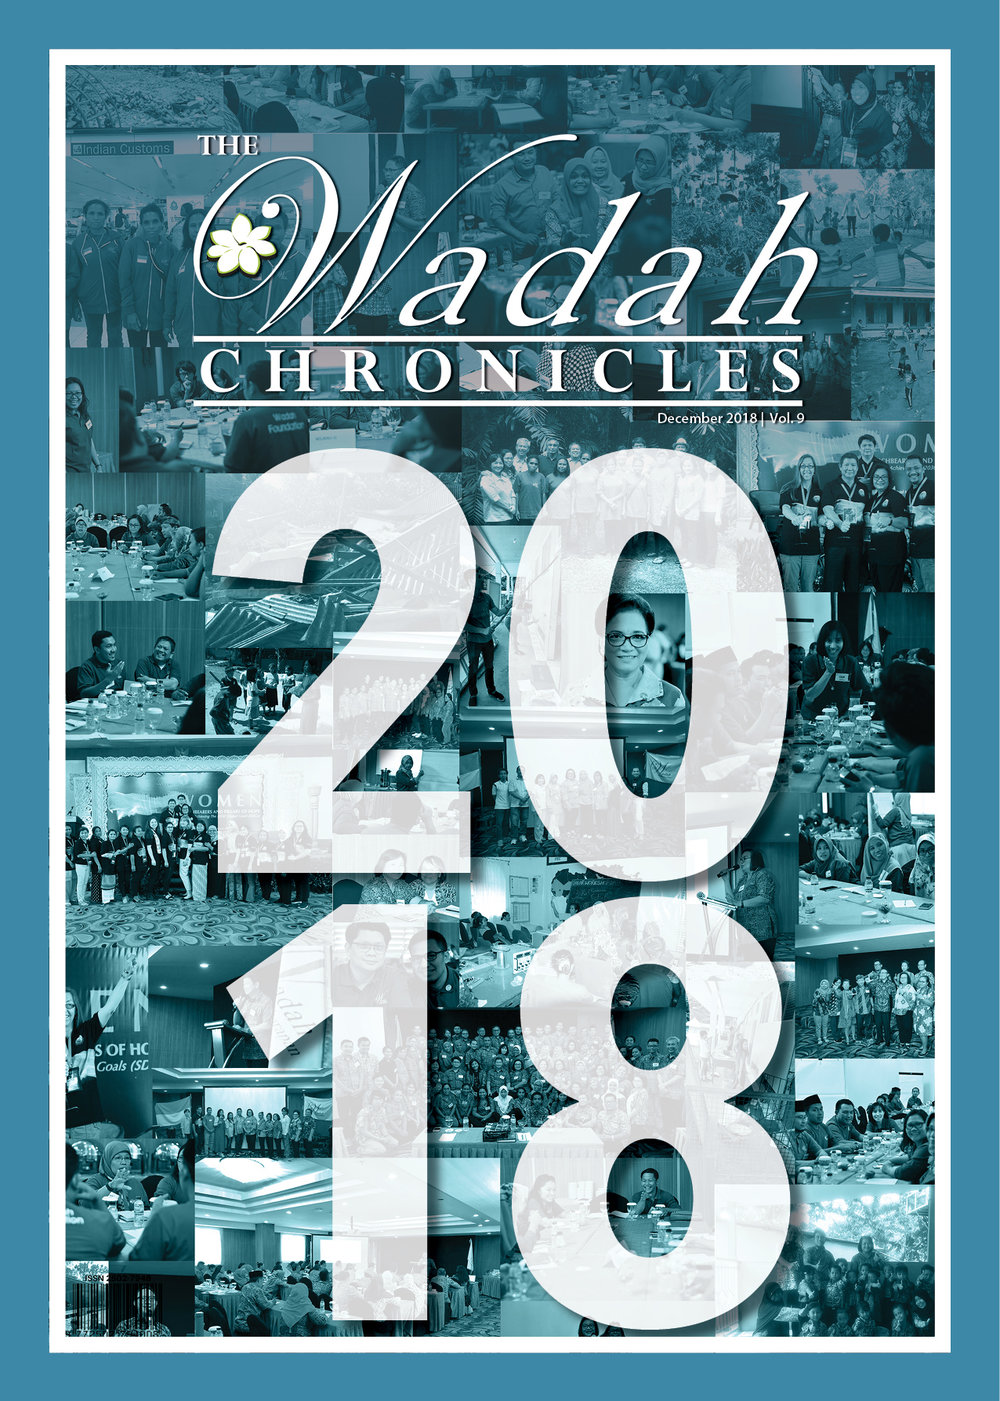 Wadah Chronicles - Dec 2018